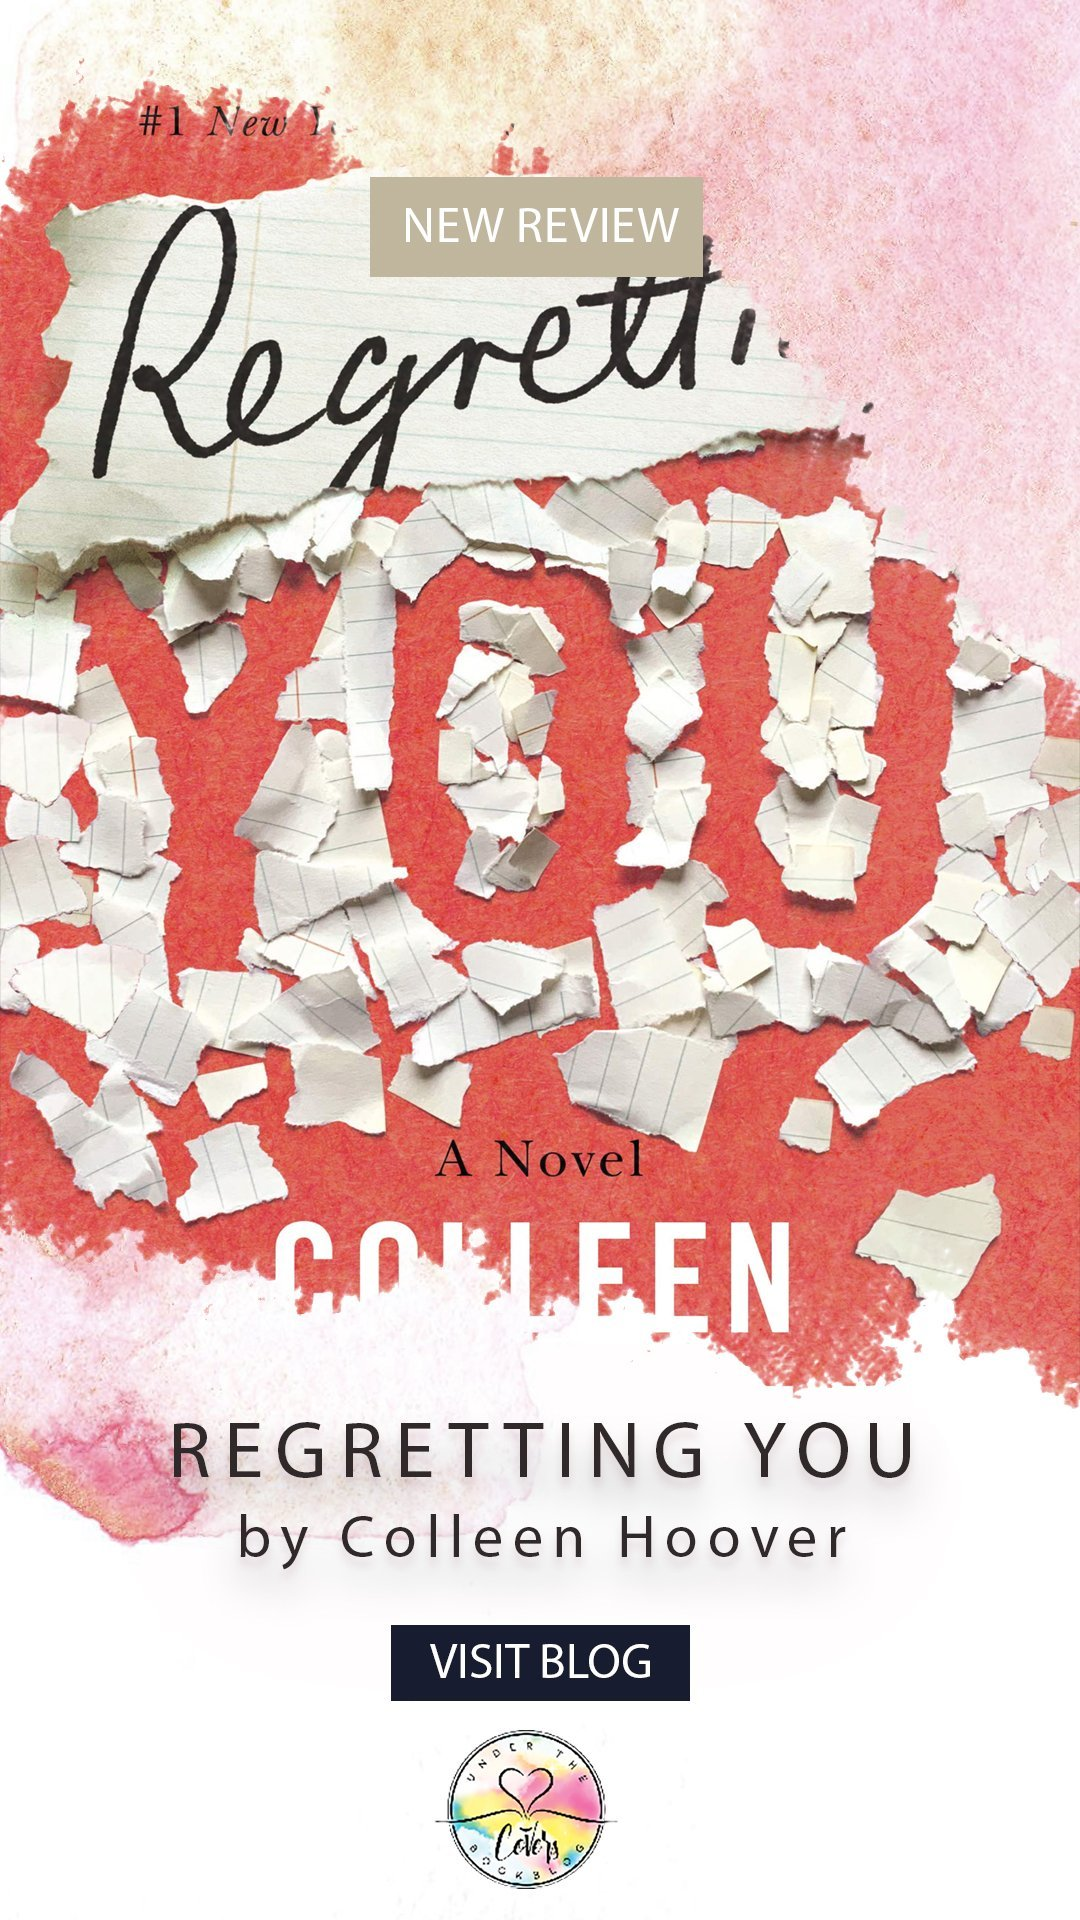 ARC Review: Regretting You by Colleen Hoover